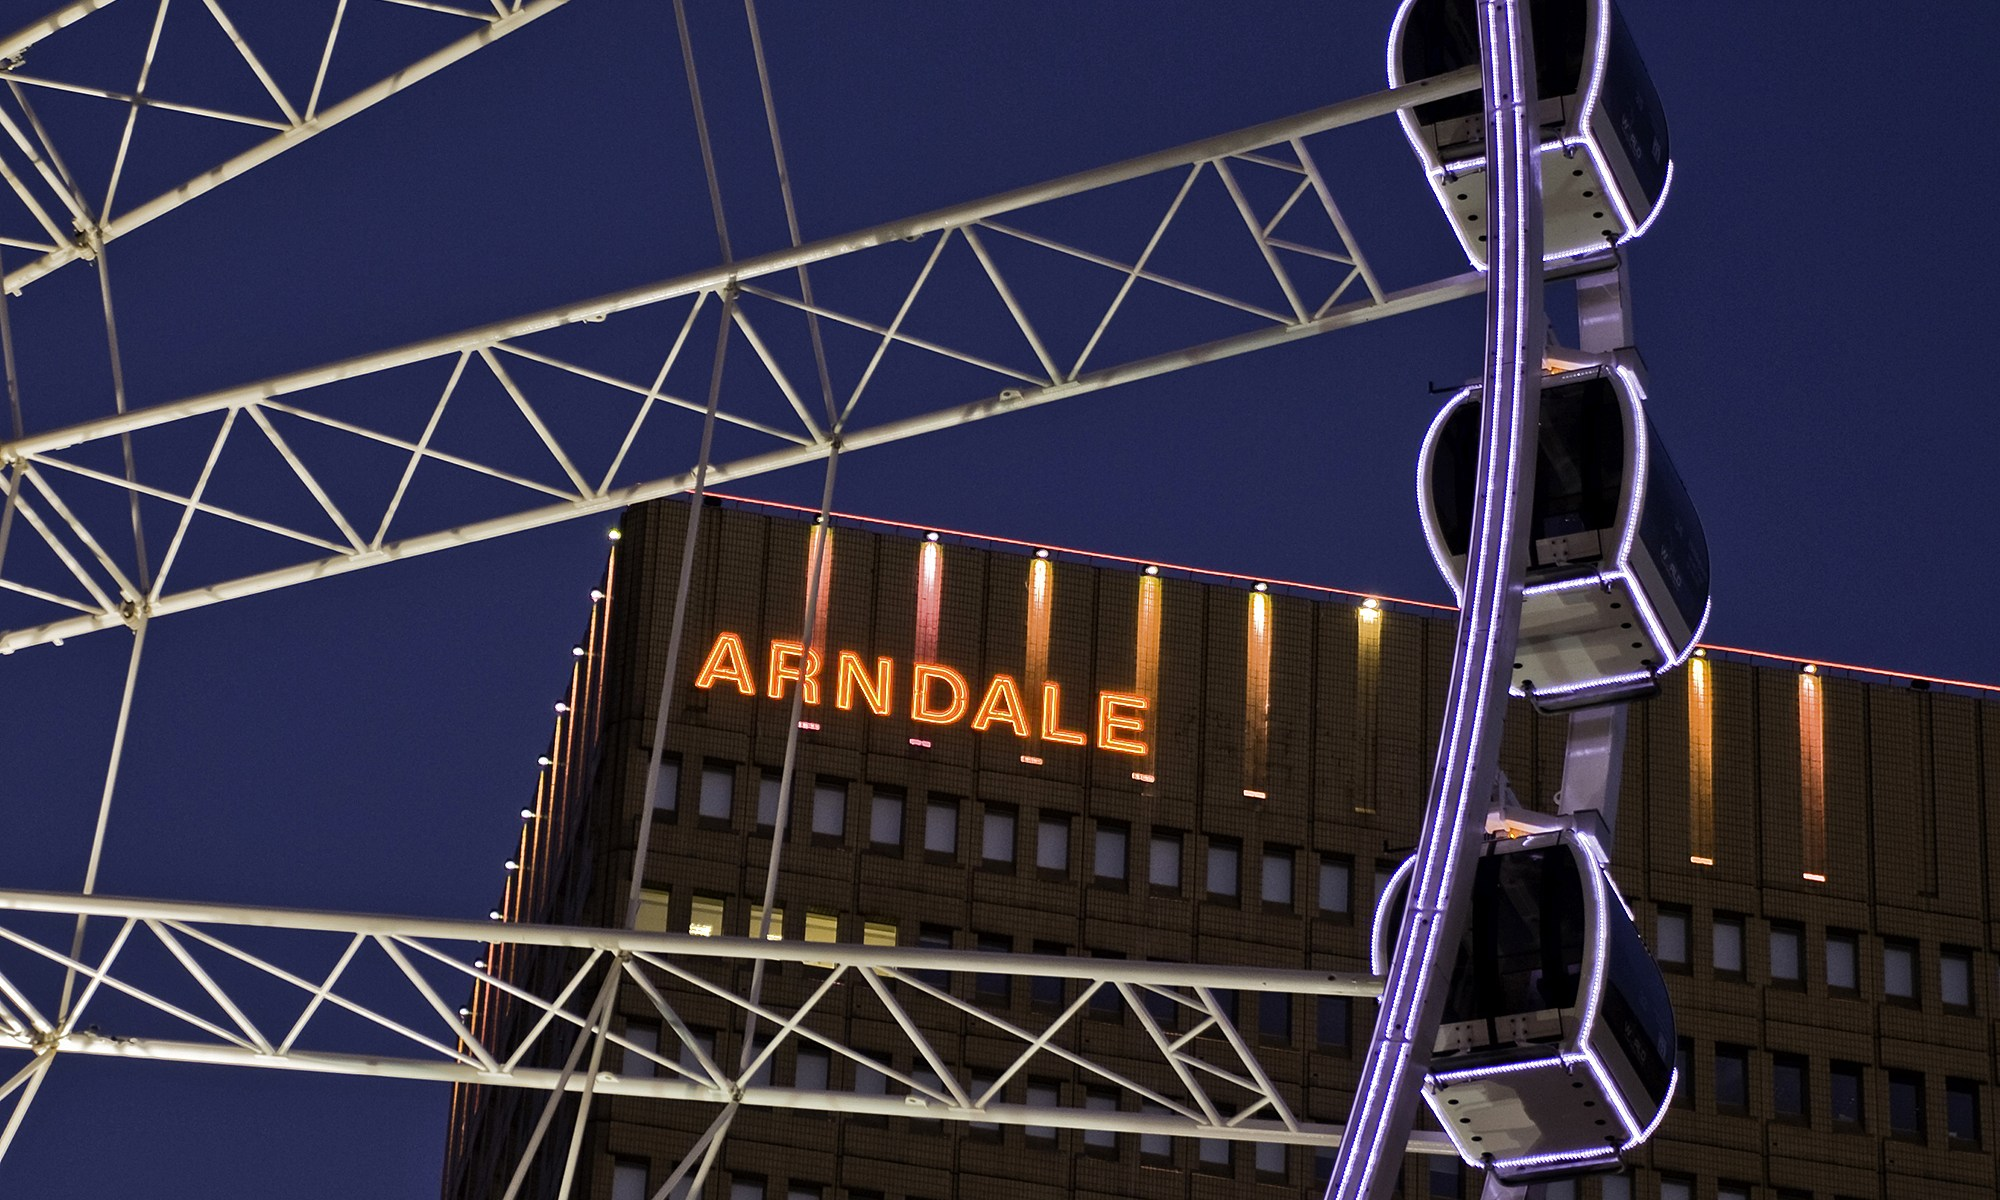 Manchester's Arndale and Wheel at Night